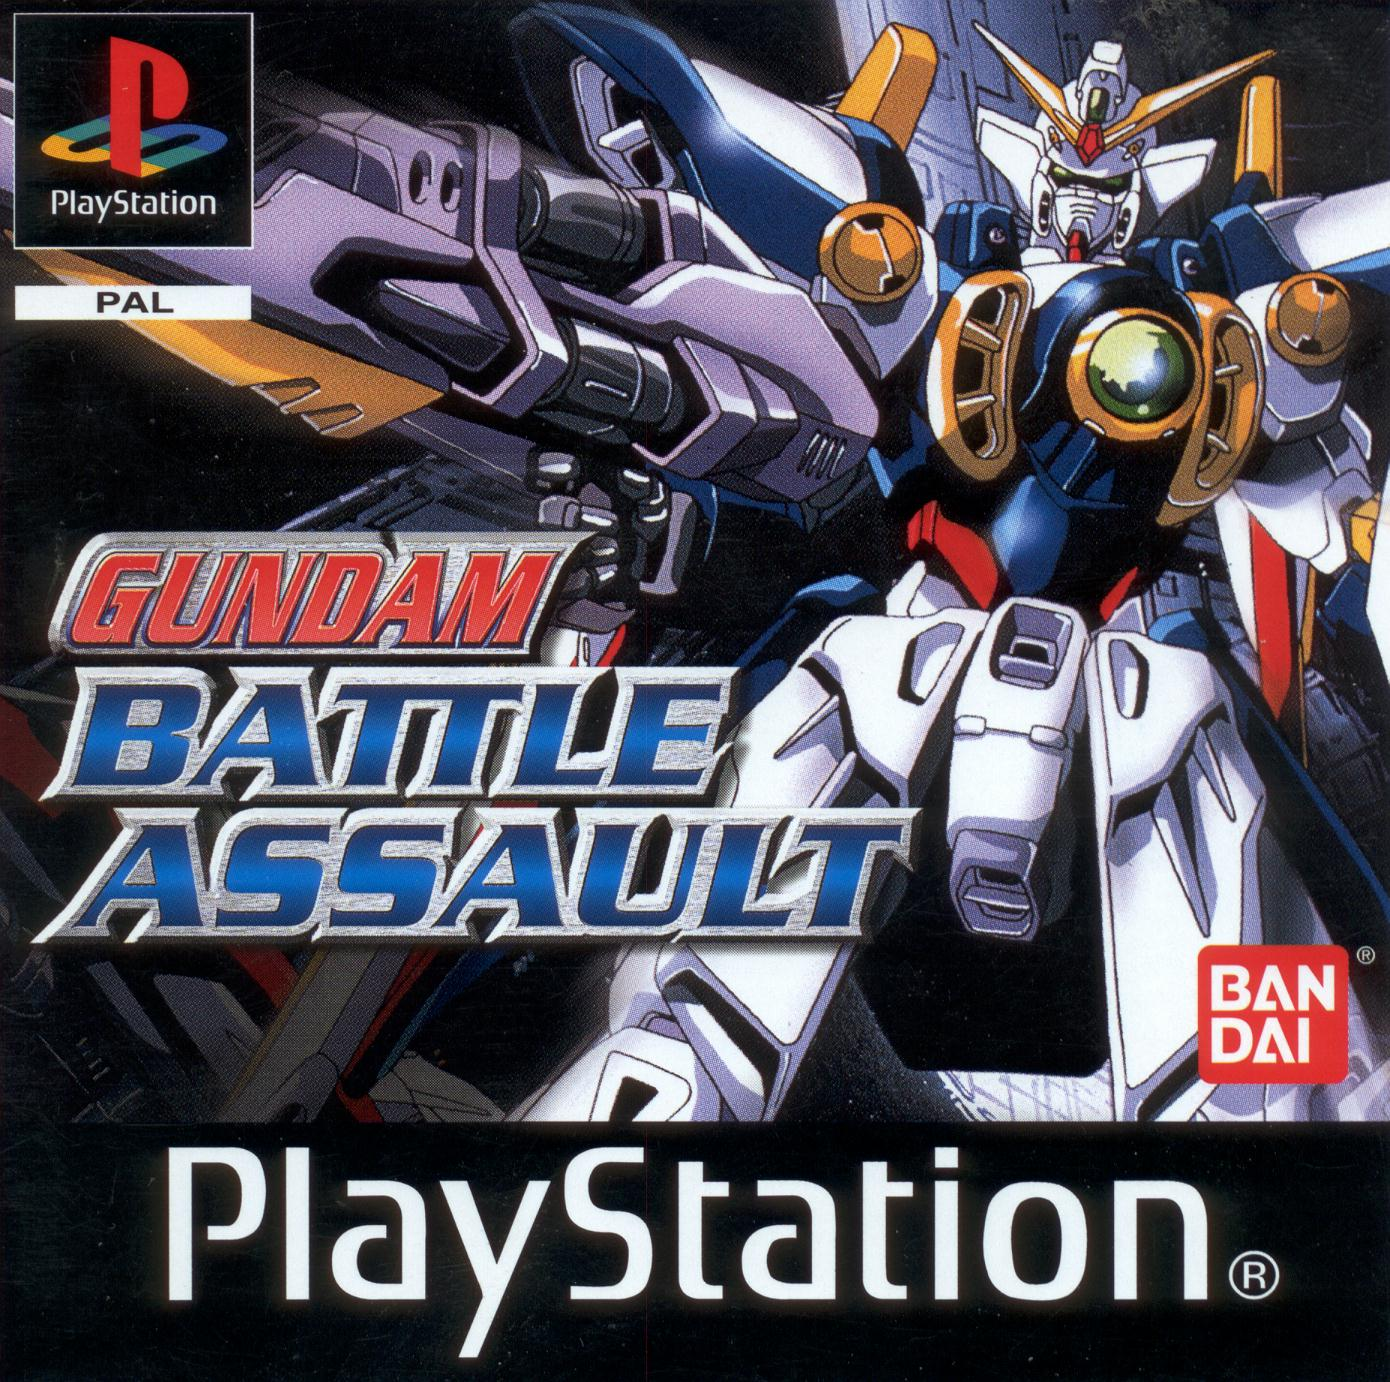 Psx Ripped Games Snesorama: DOWNLOAD GAME PSX PS1 ISO FREE: Download Game Psx/ps1 Rip